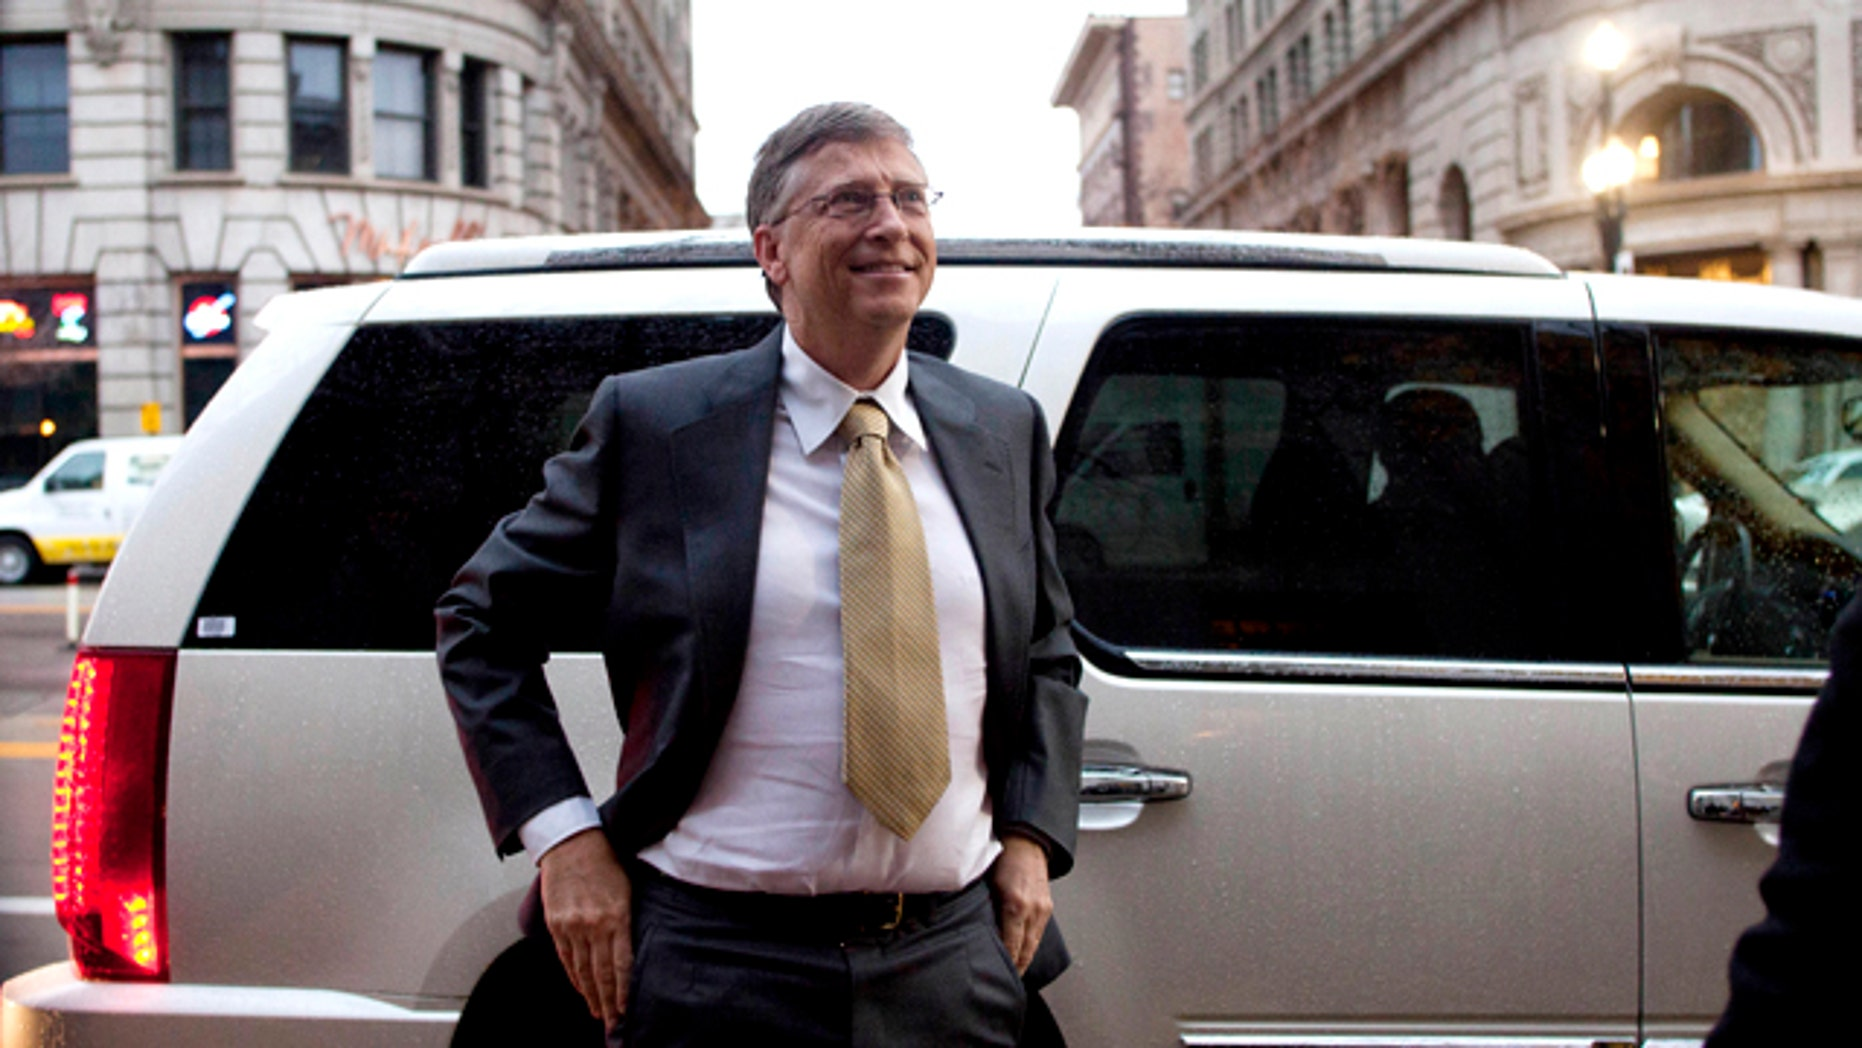 Nov. 21, 2011: Microsoft founder Bill Gates arrives at the Frank E. Moss federal courthouse in Salt Lake City to testify in a $1B antitrust lawsuit brought by Novell Inc. Gates, wearing a gray suit and a yellow tie, was the first witness as Microsoft lawyers presented their case in a trial that's been ongoing for about a month.